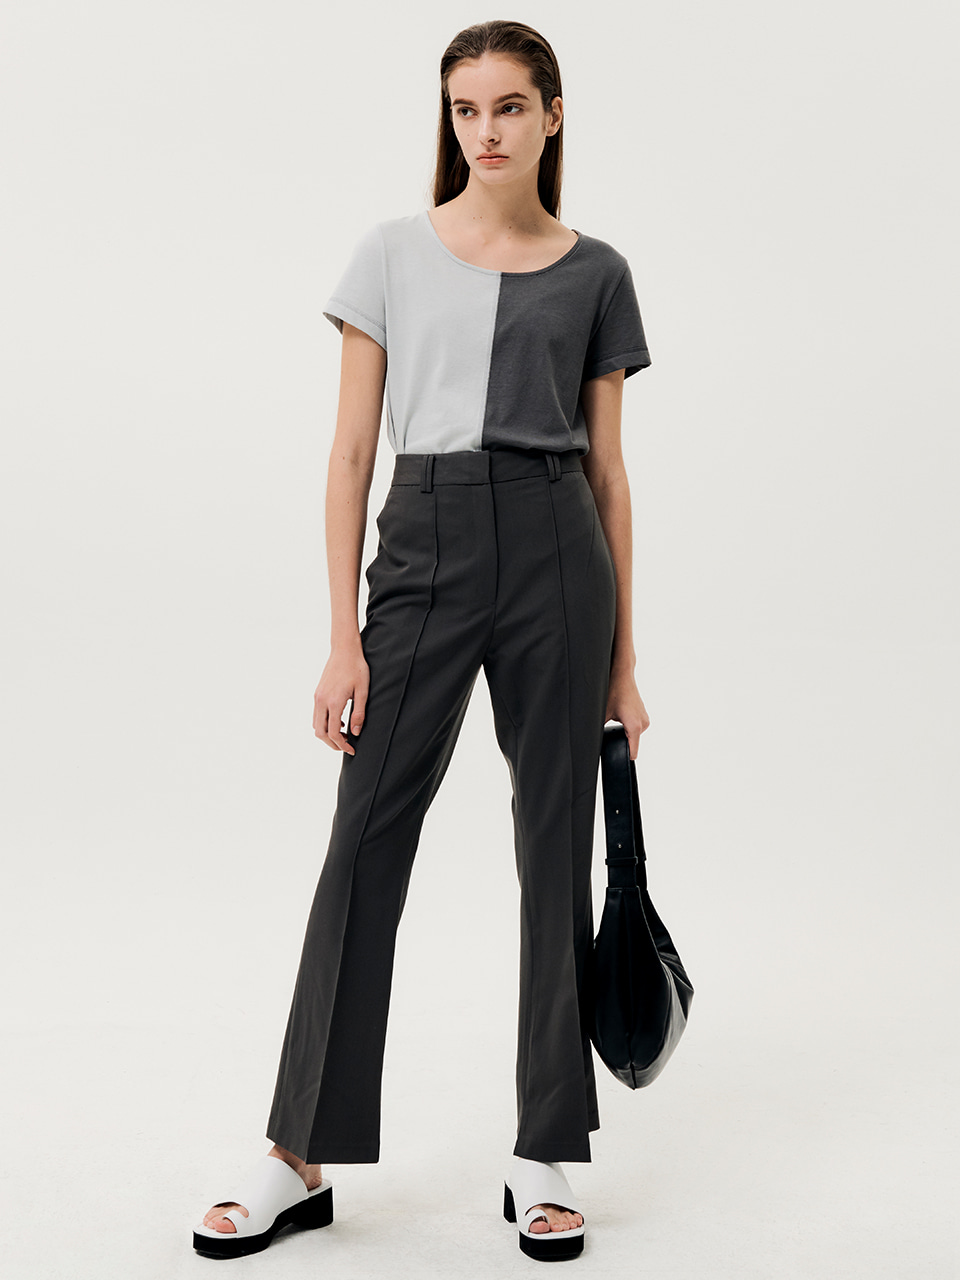 Pin Tuck Slit Slacks Charcoal